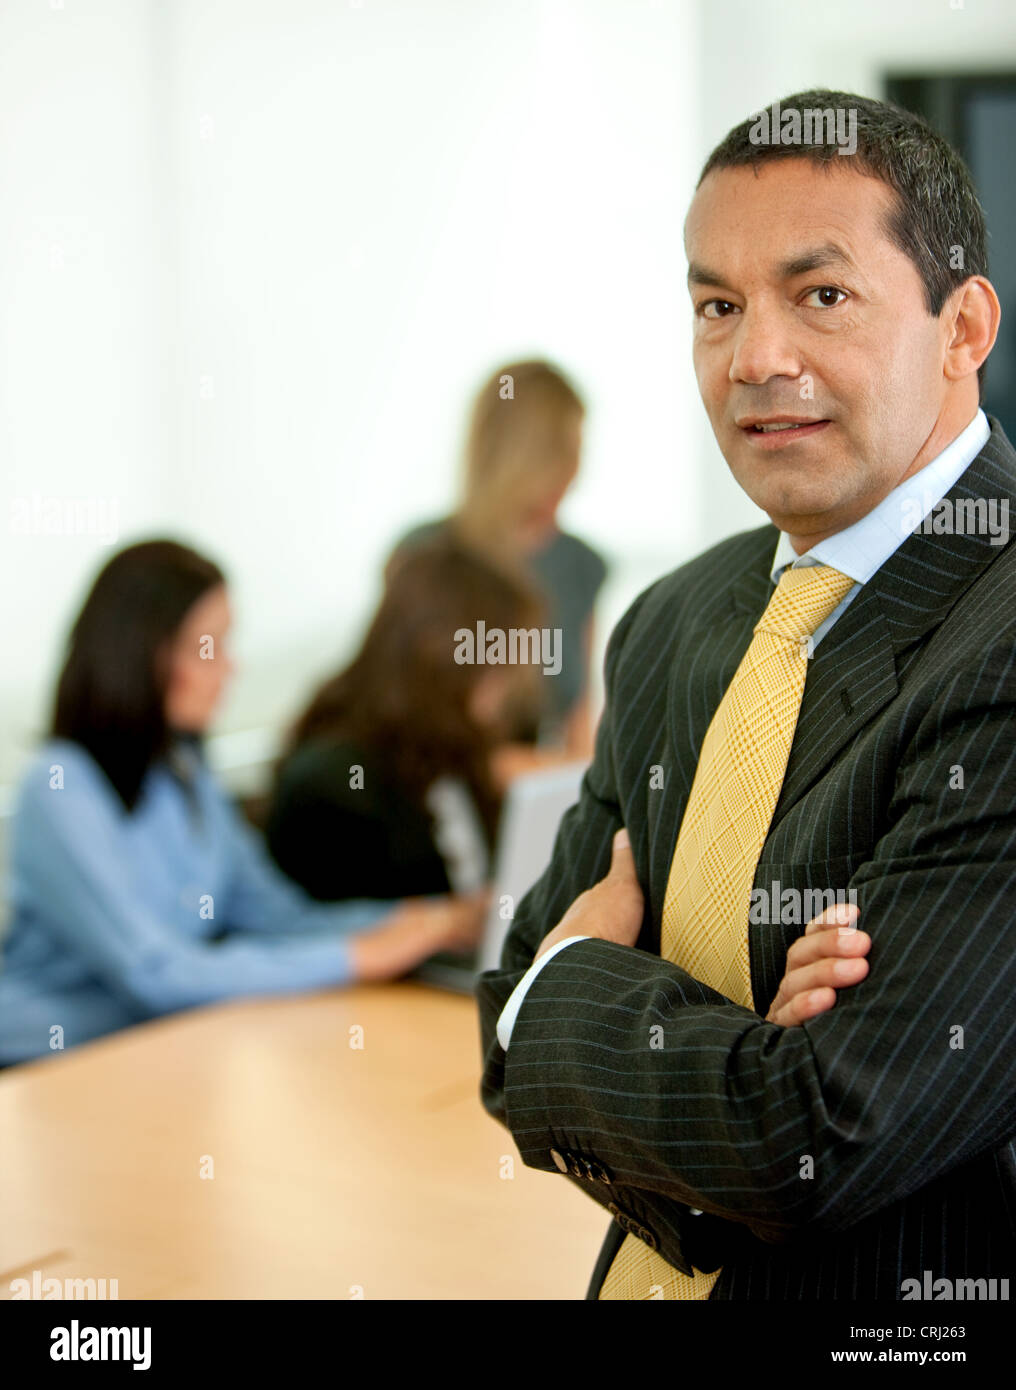 business man with arms crossed and people in the background working at a laptop - Stock Image